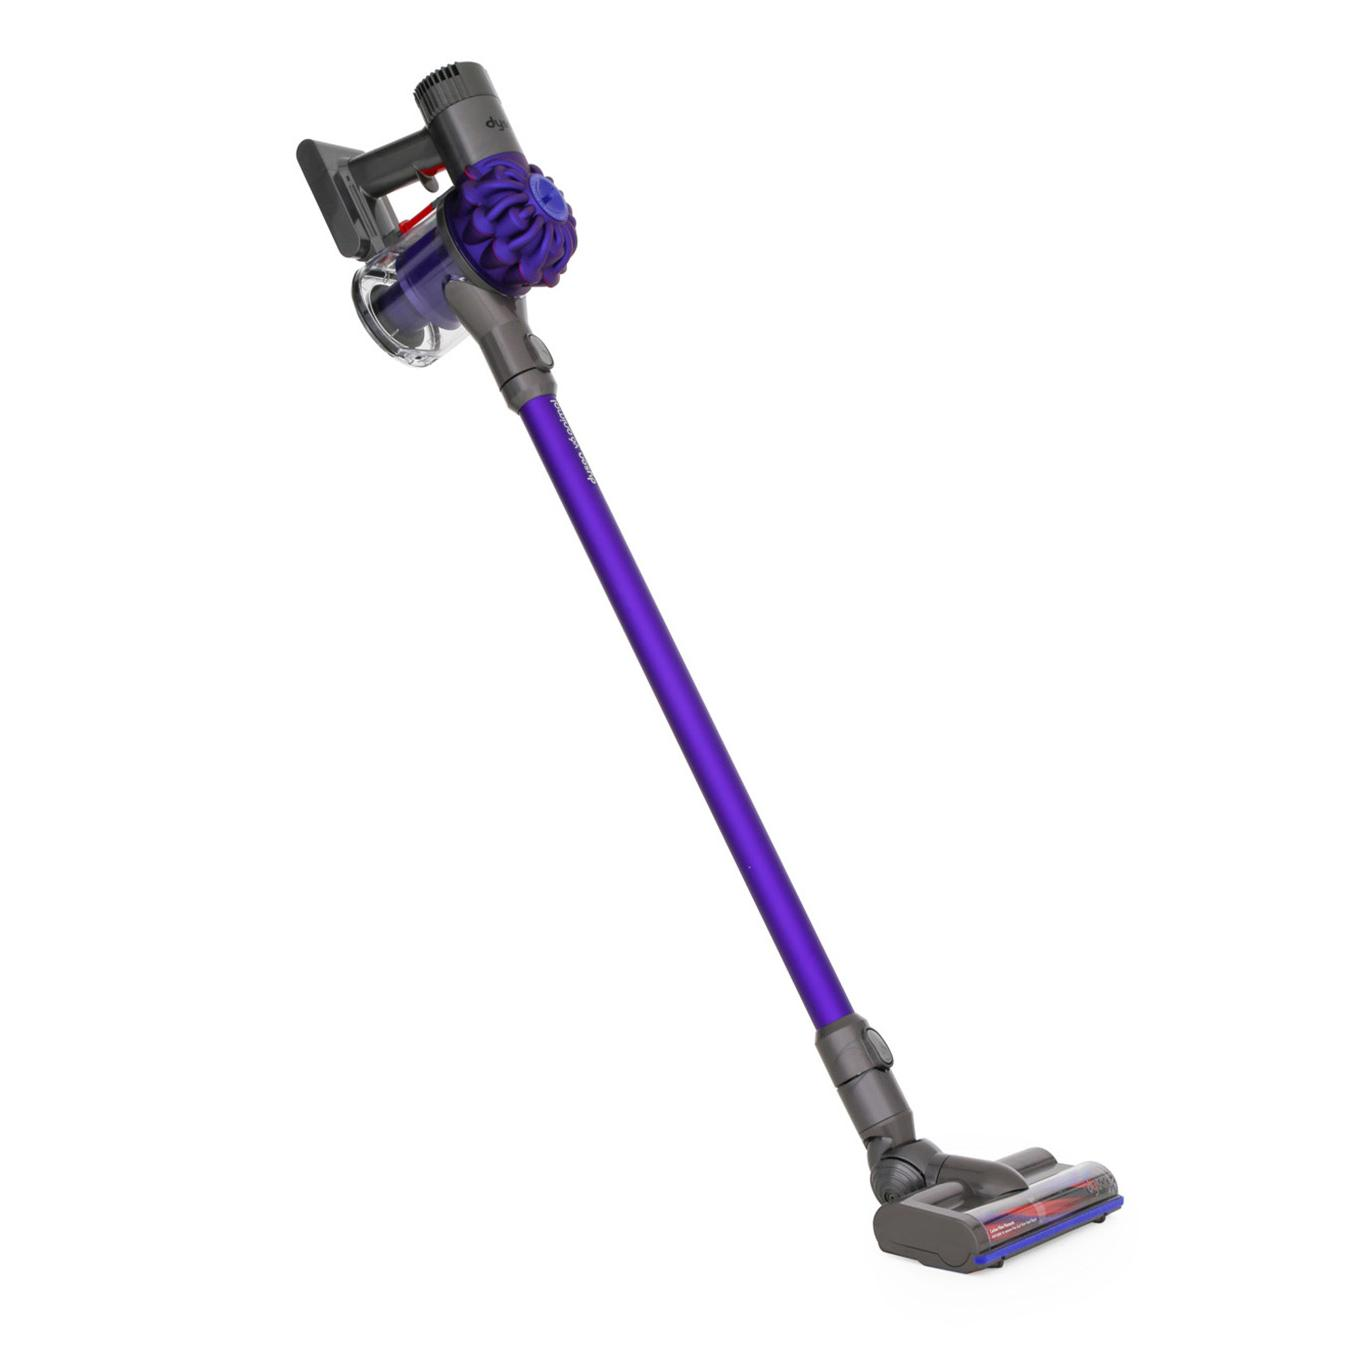 Image of: Purple Dyson V6 Animal Hand Held Vacuum Cleaner discontinued Marks Electrical Buy Dyson V6 Animal Hand Held Vacuum Cleaner v6animal Purple And